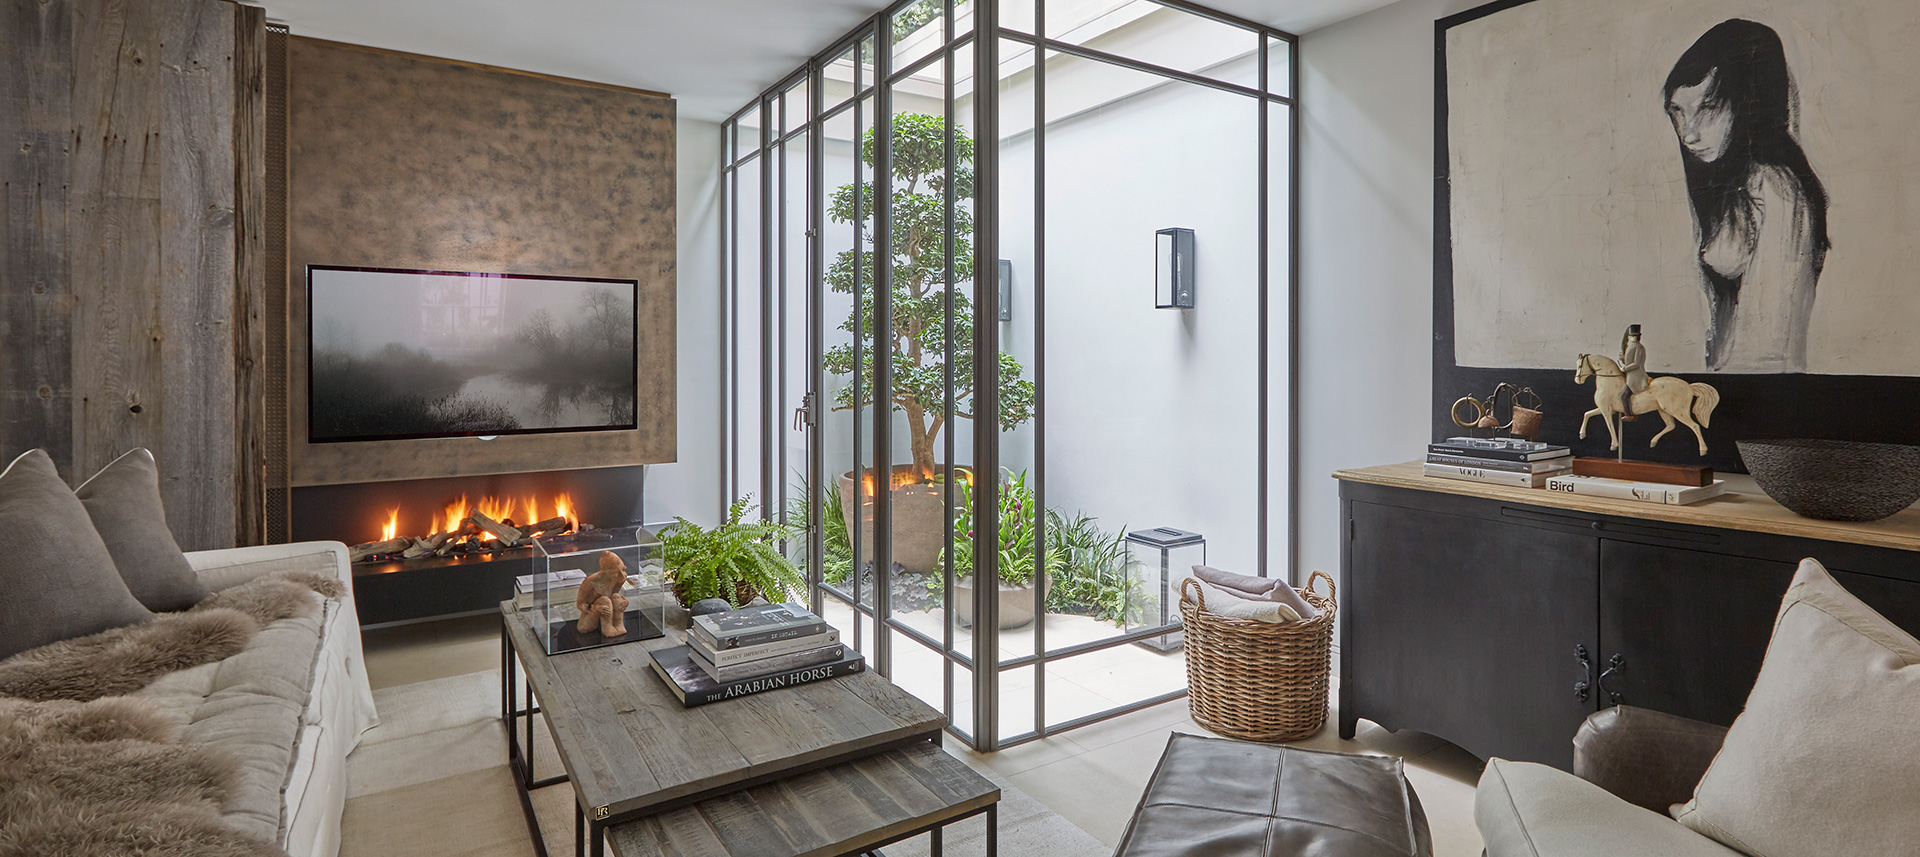 Open-to-sky little corners wash the living areas with natural light, making them look fresh and bright| Louise Bradley| London| STIR